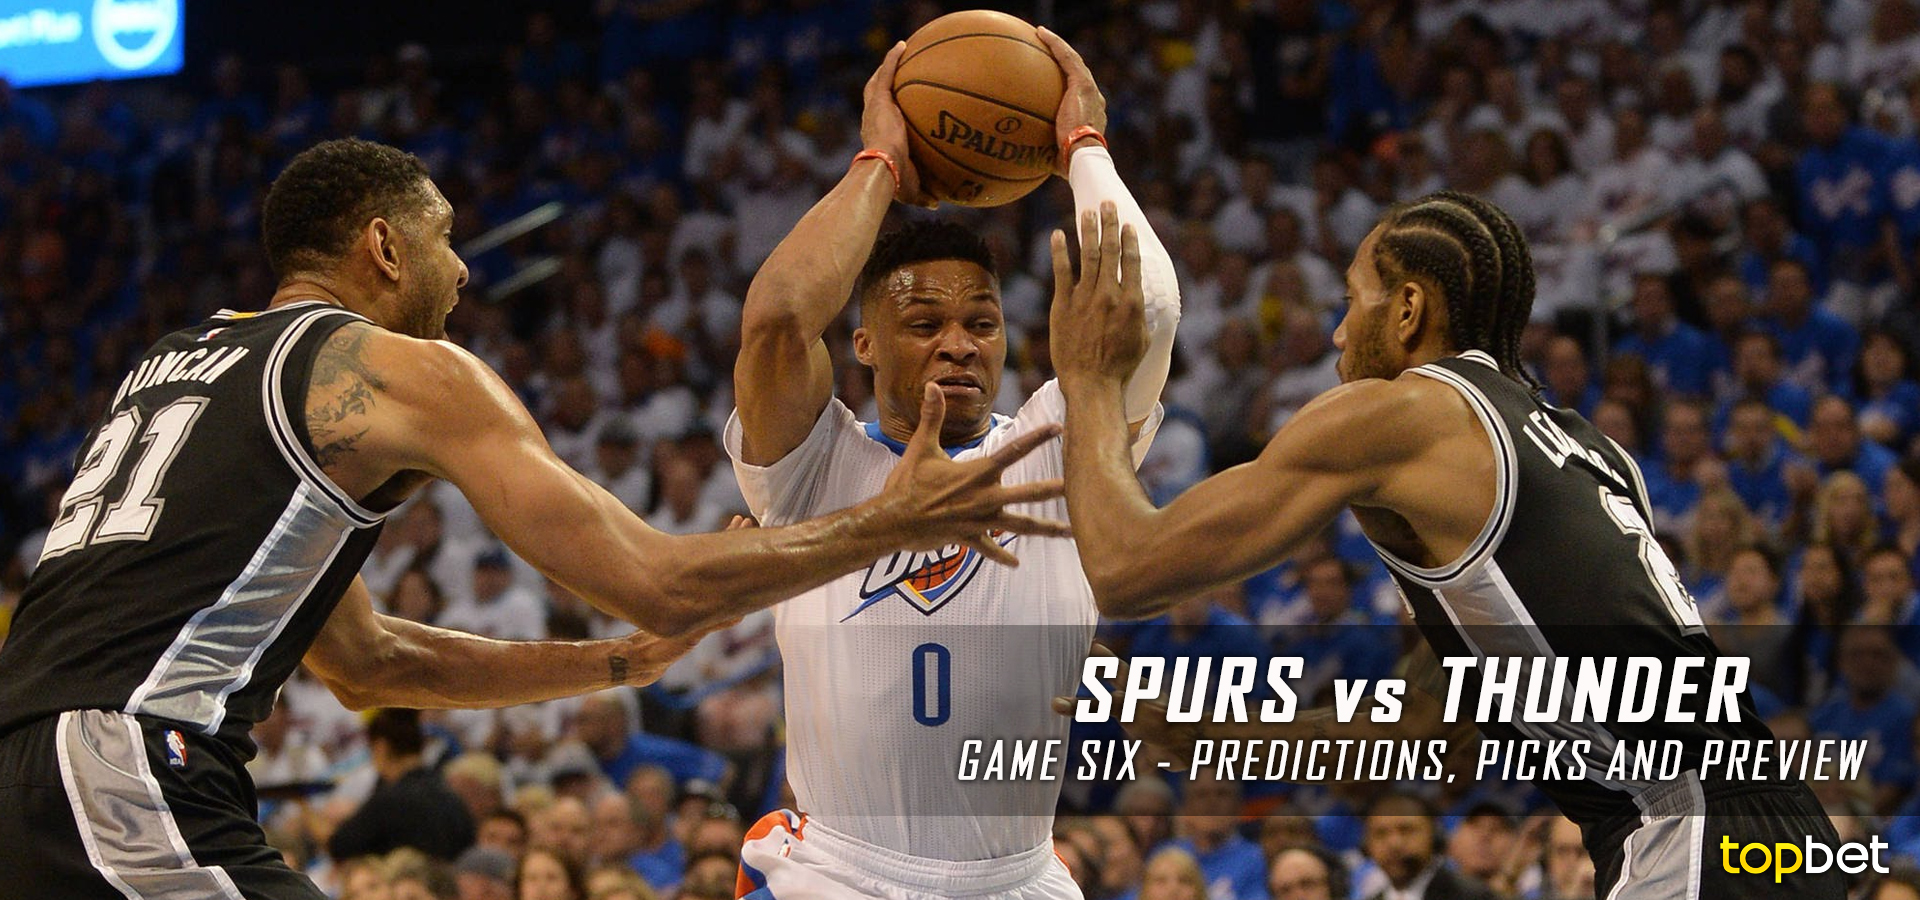 Spurs vs Thunder Series Game 6 Predictions, Picks and Odds